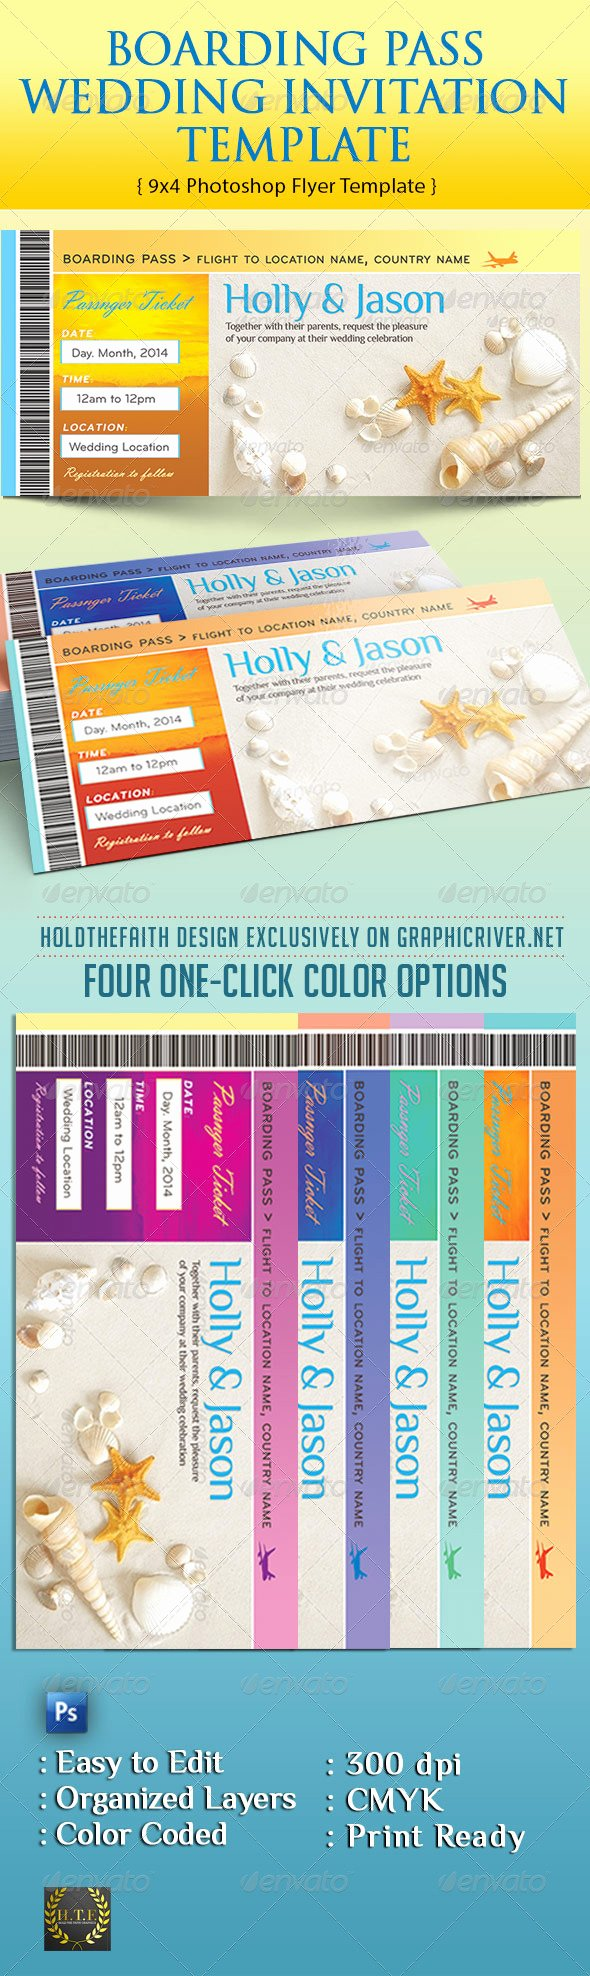 Boarding Pass Template Photoshop Lovely Boarding Pass Wedding Invitation Template by Holdthefaith